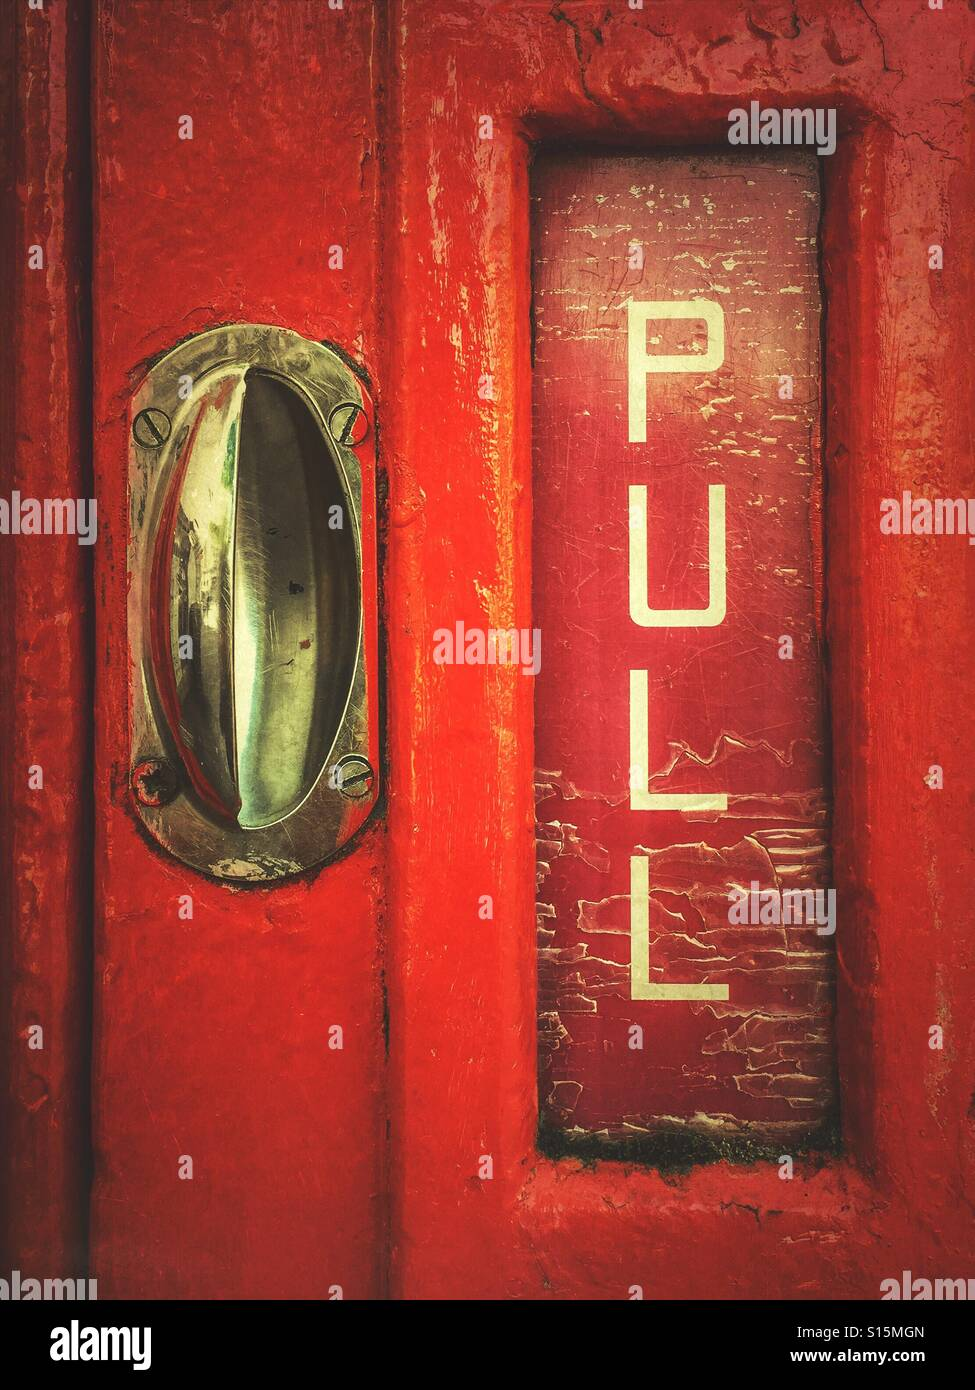 Red phone box detail - Stock Image